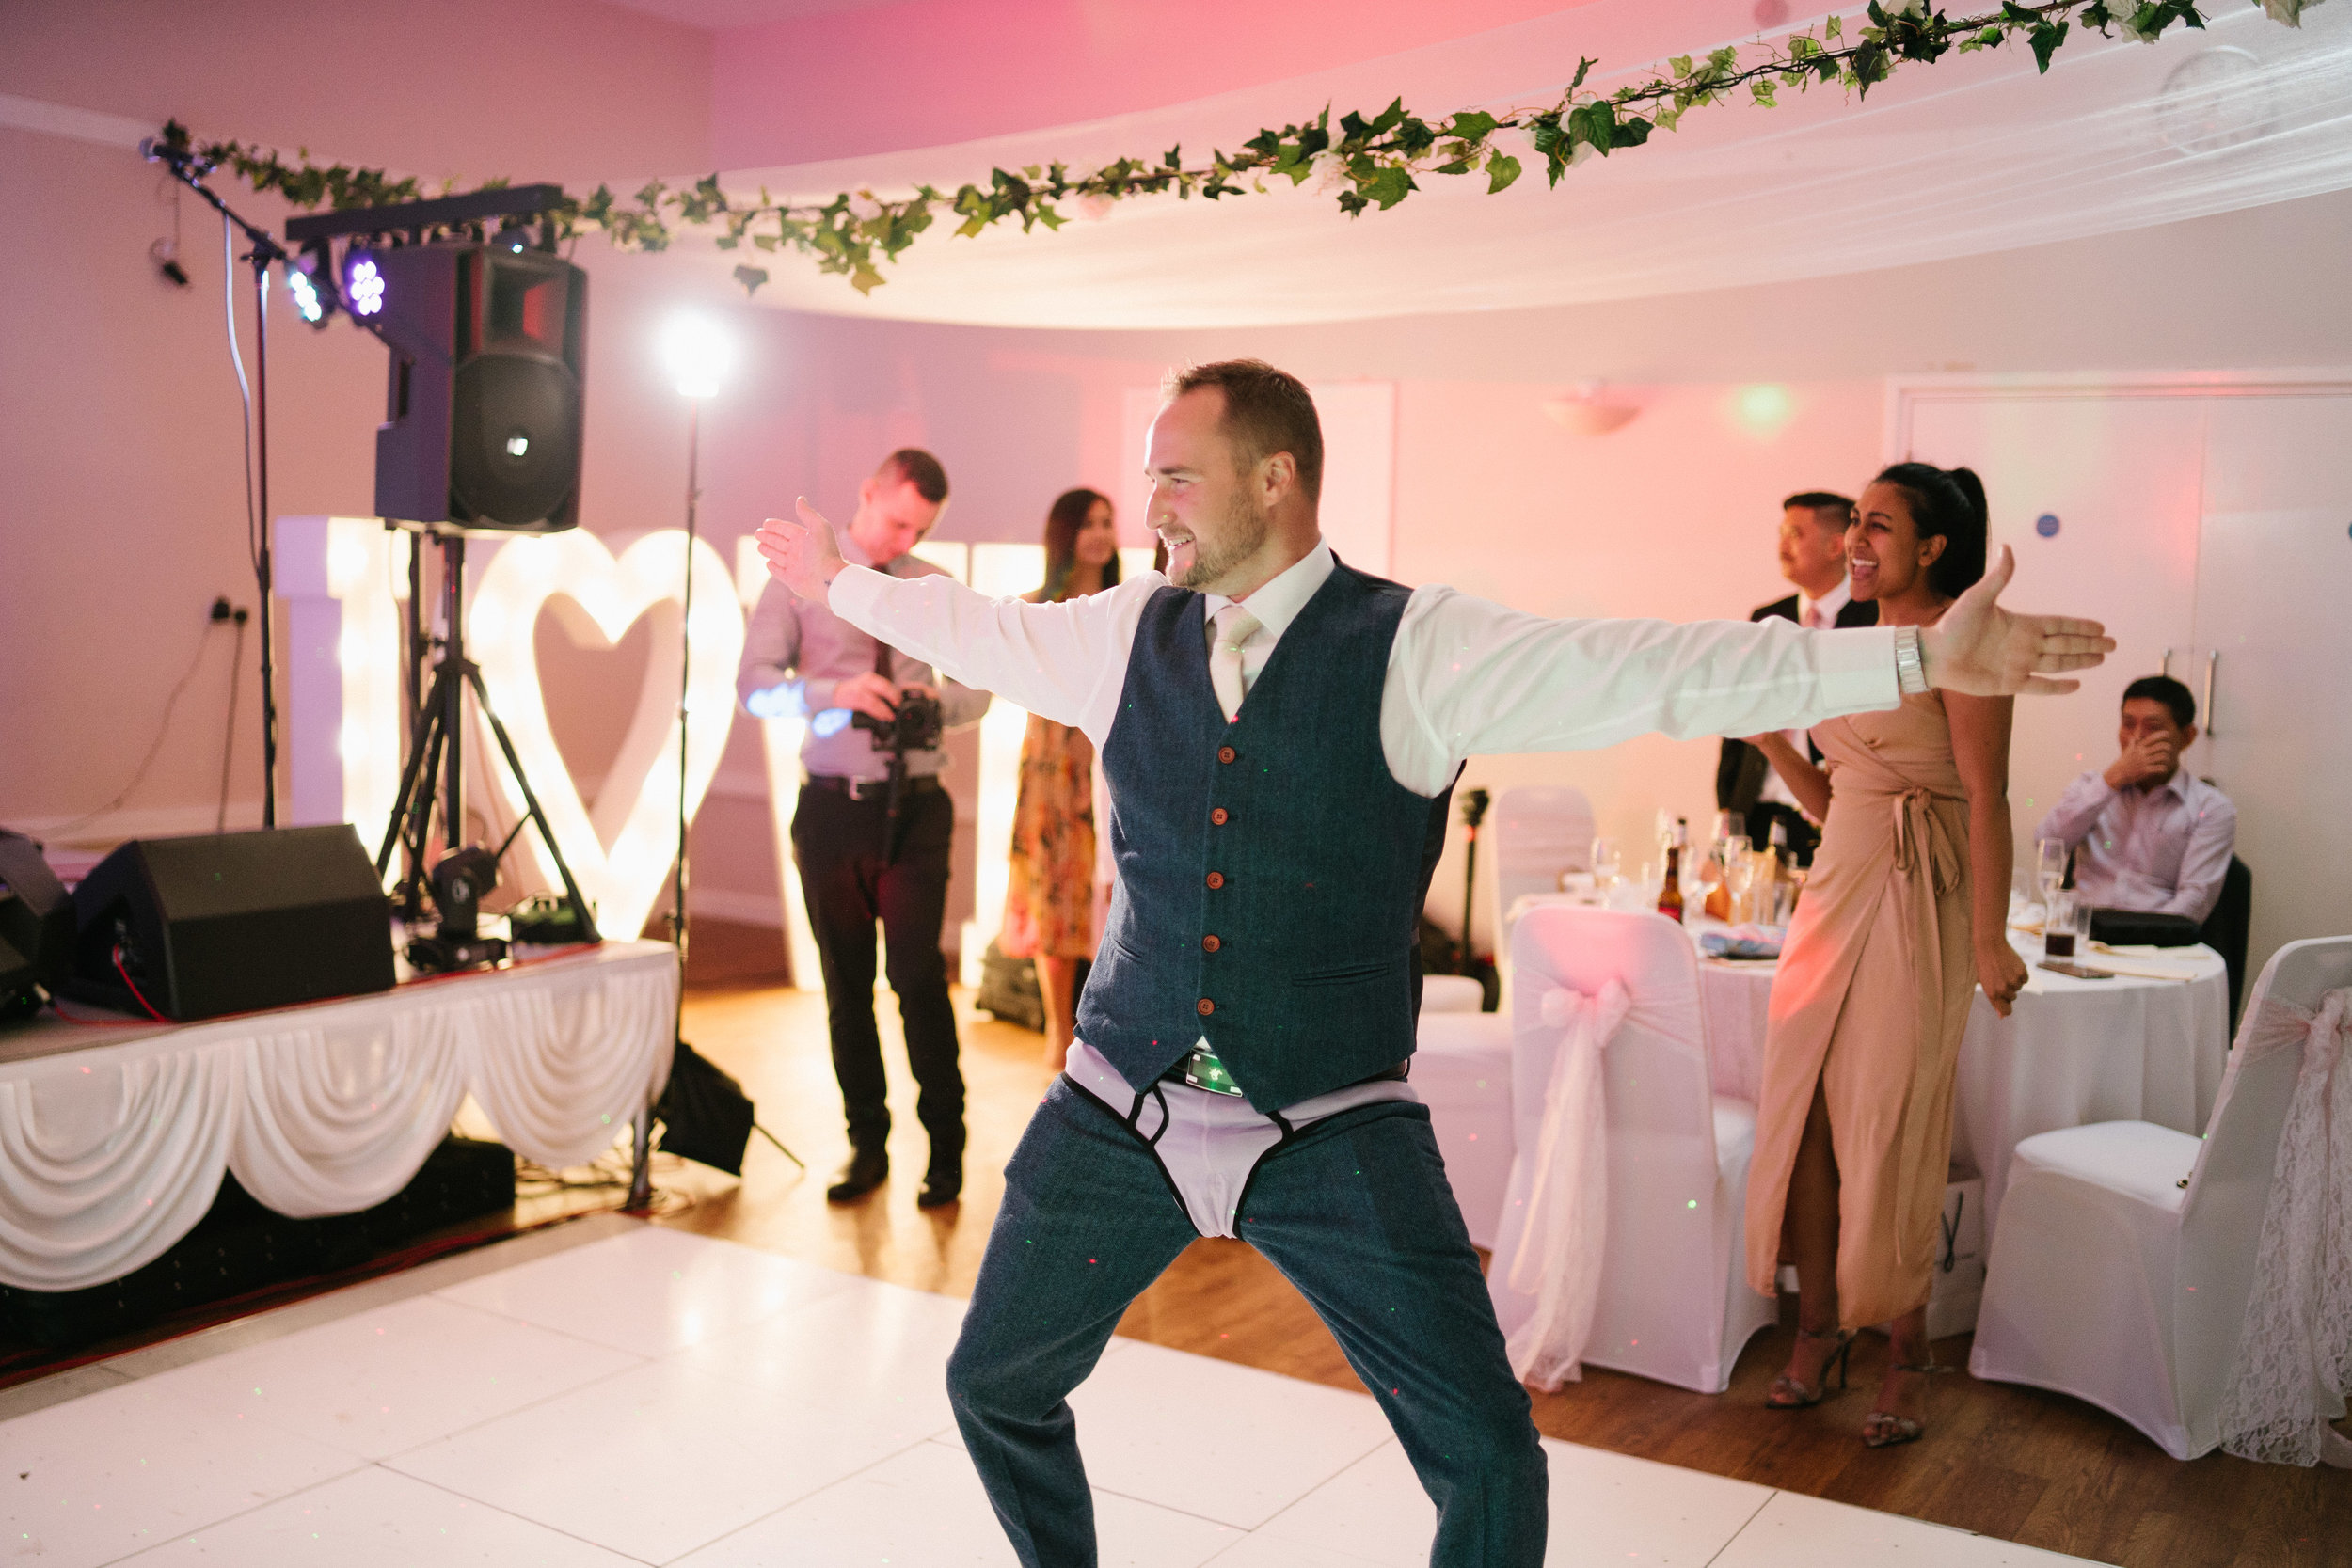 bedfordshire-london-wedding-photographer-videographer-63